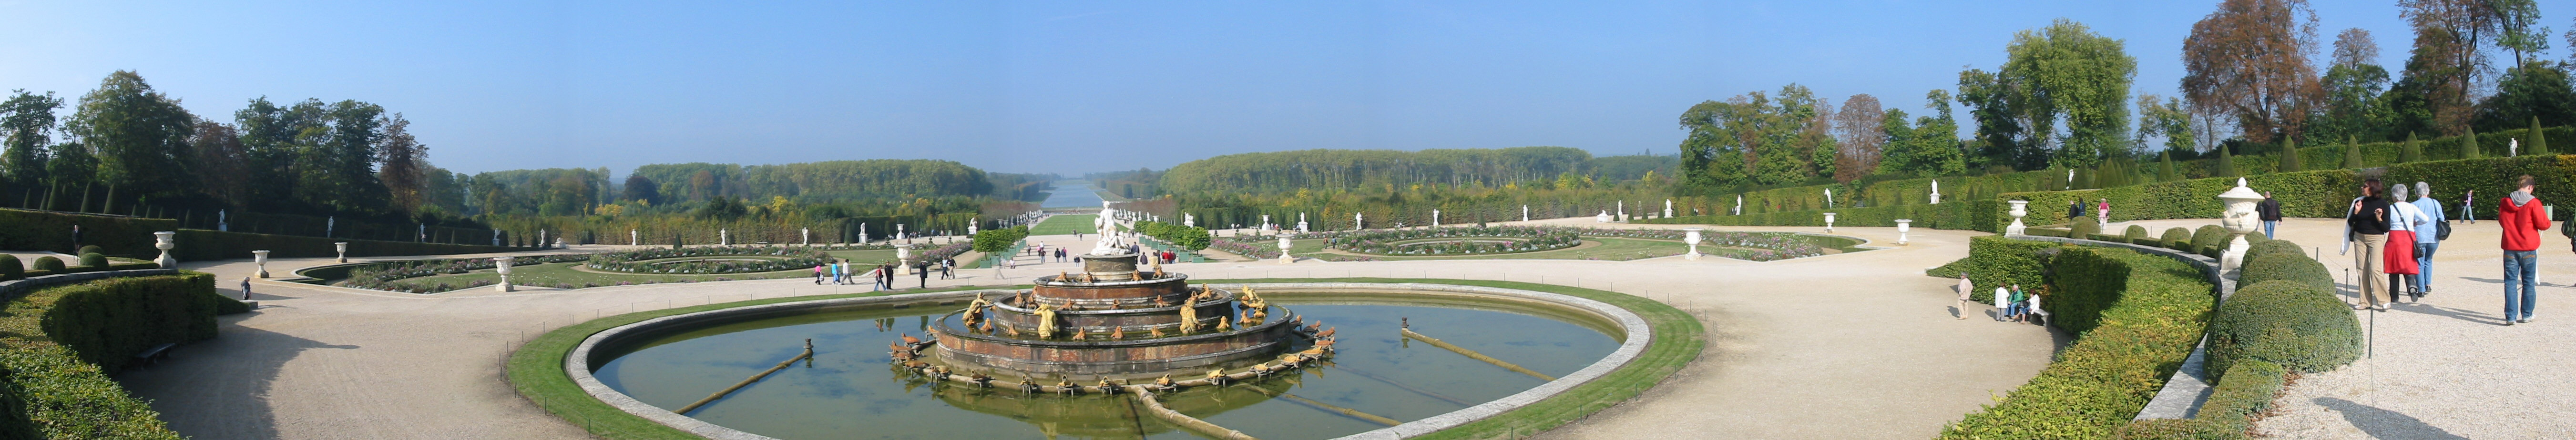 https://upload.wikimedia.org/wikipedia/commons/5/59/Panorama_VersaillesGarden.jpg